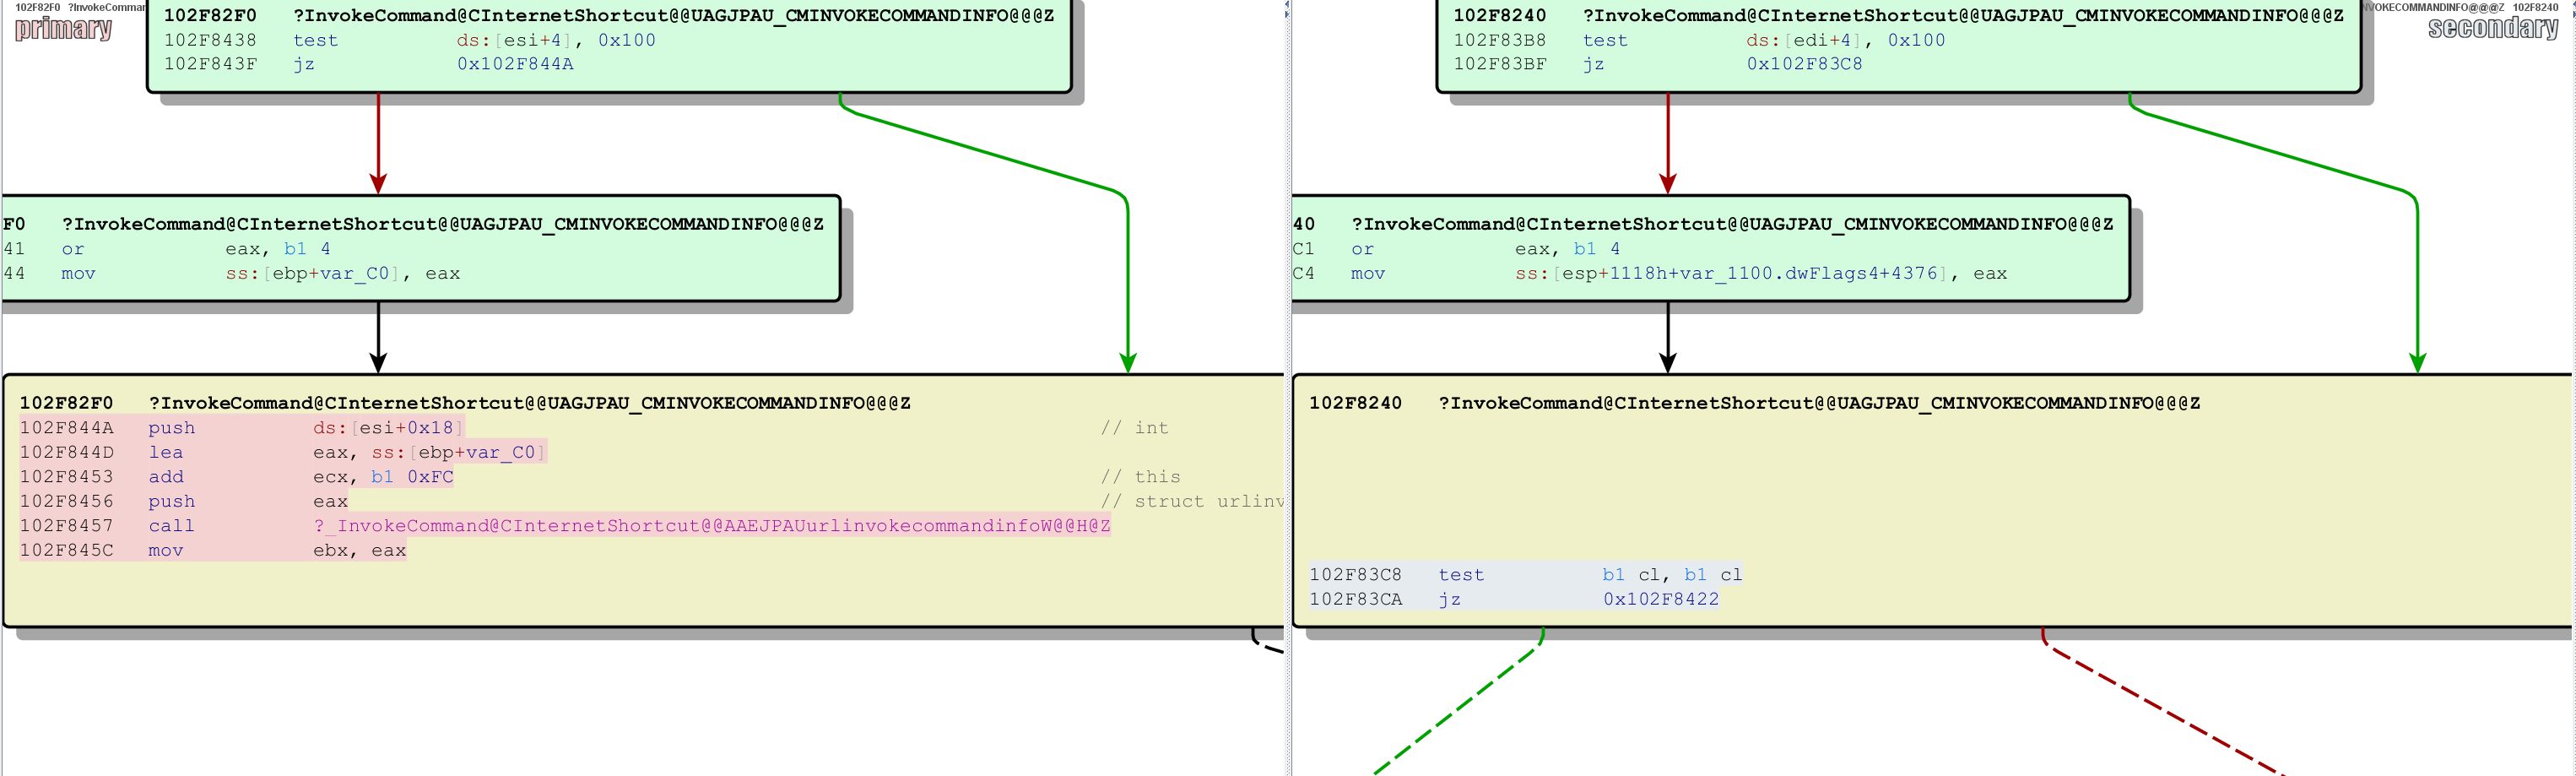 Analysis of MS16-104:  URL files Security Feature Bypass